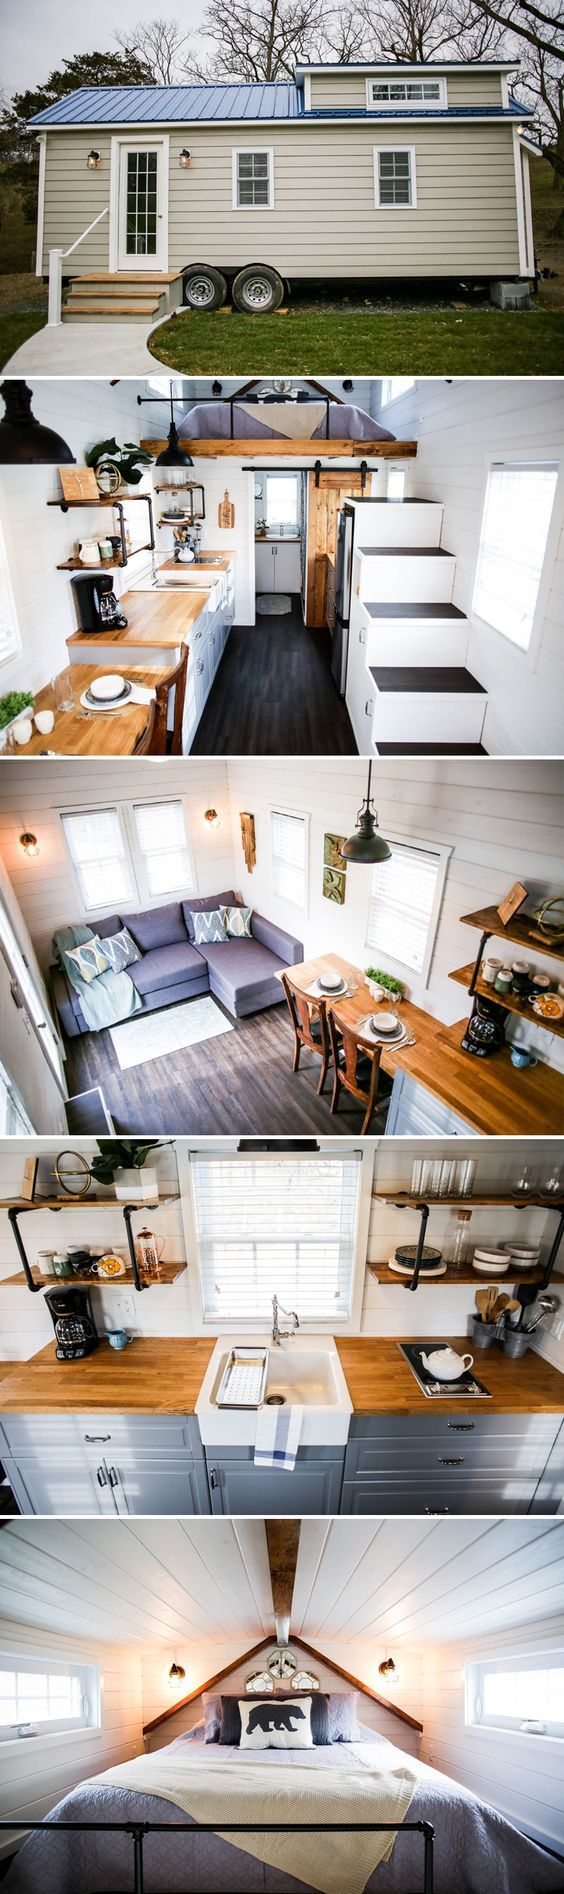 Mobilheim design-ideen modern take two by liberation tiny homes  kleines häuschen